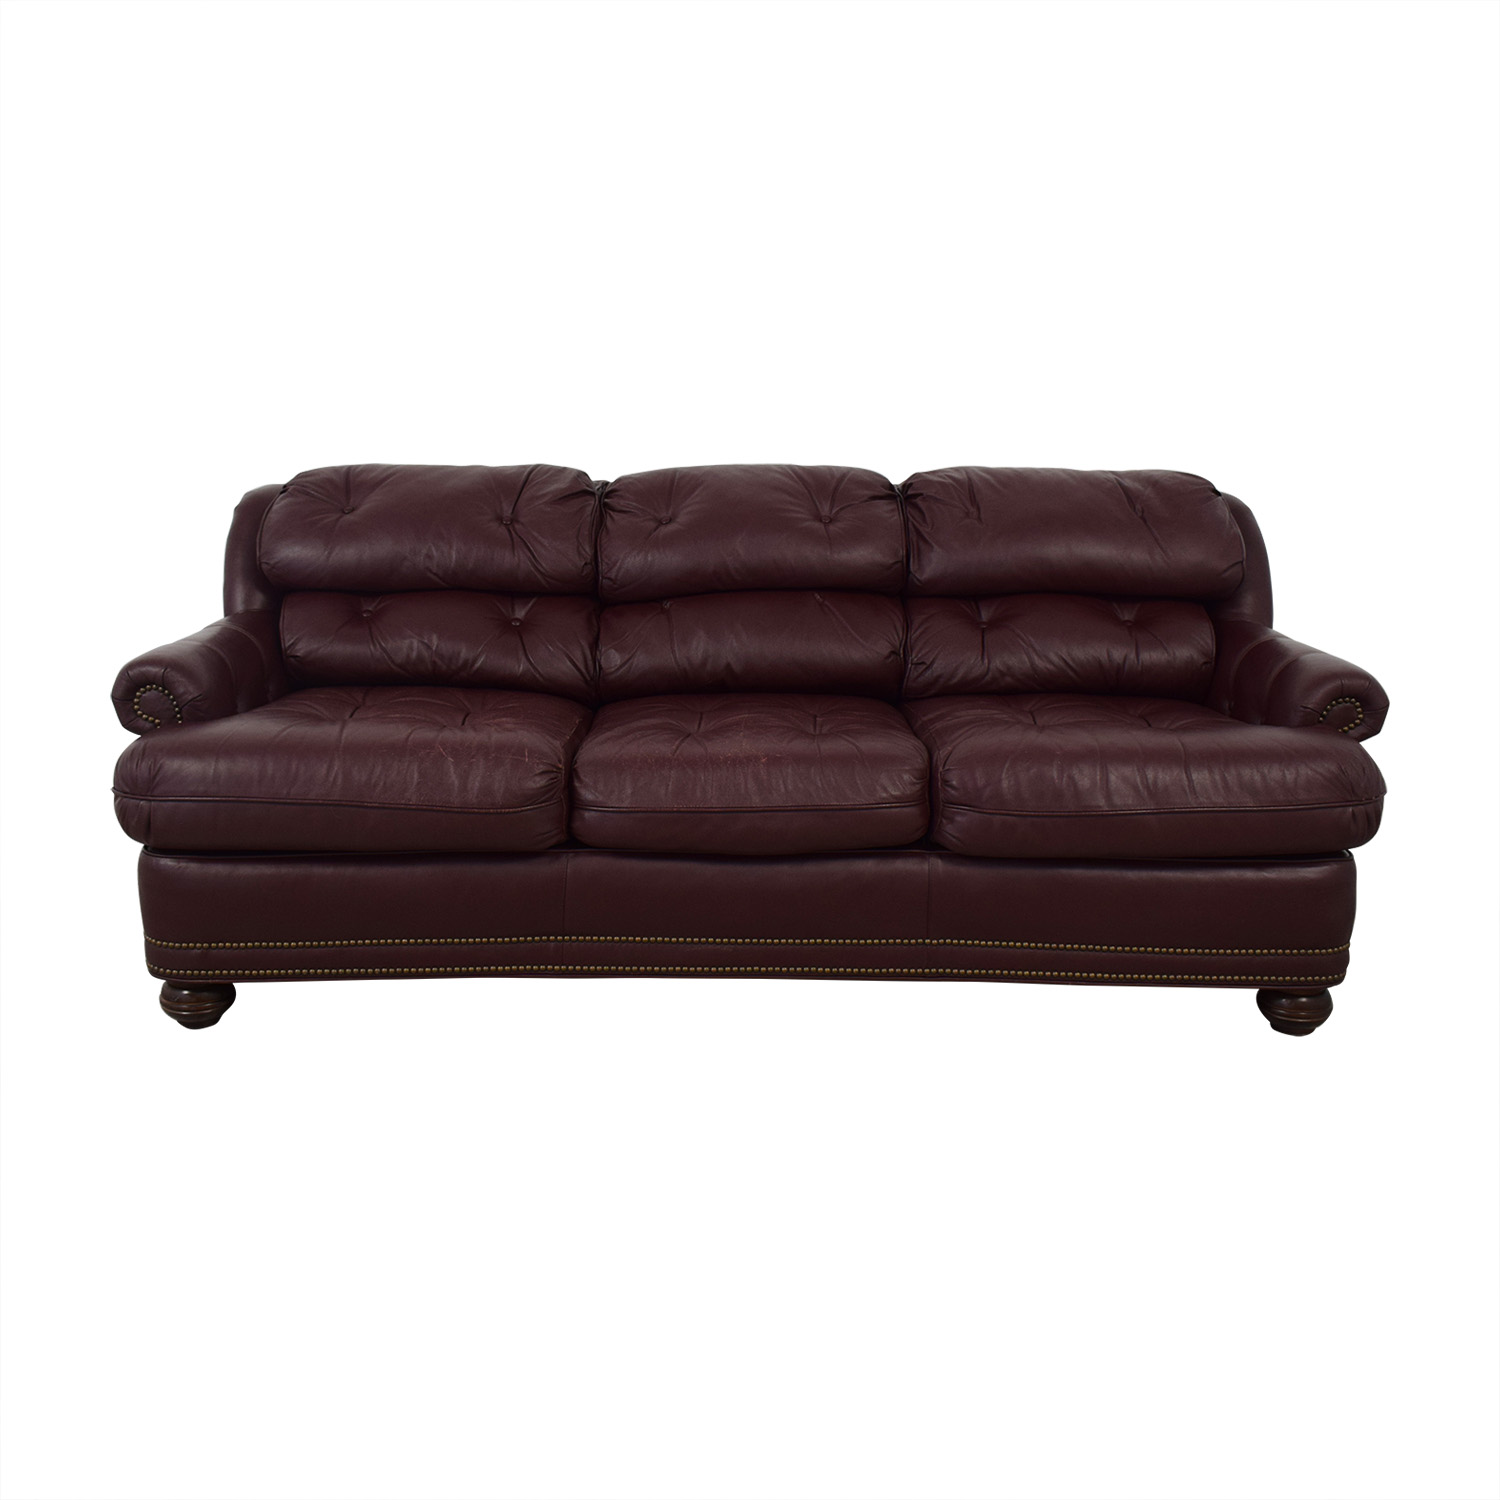 buy Distinctions Furniture Red Nailhead Distinctions Furniture Classic Sofas